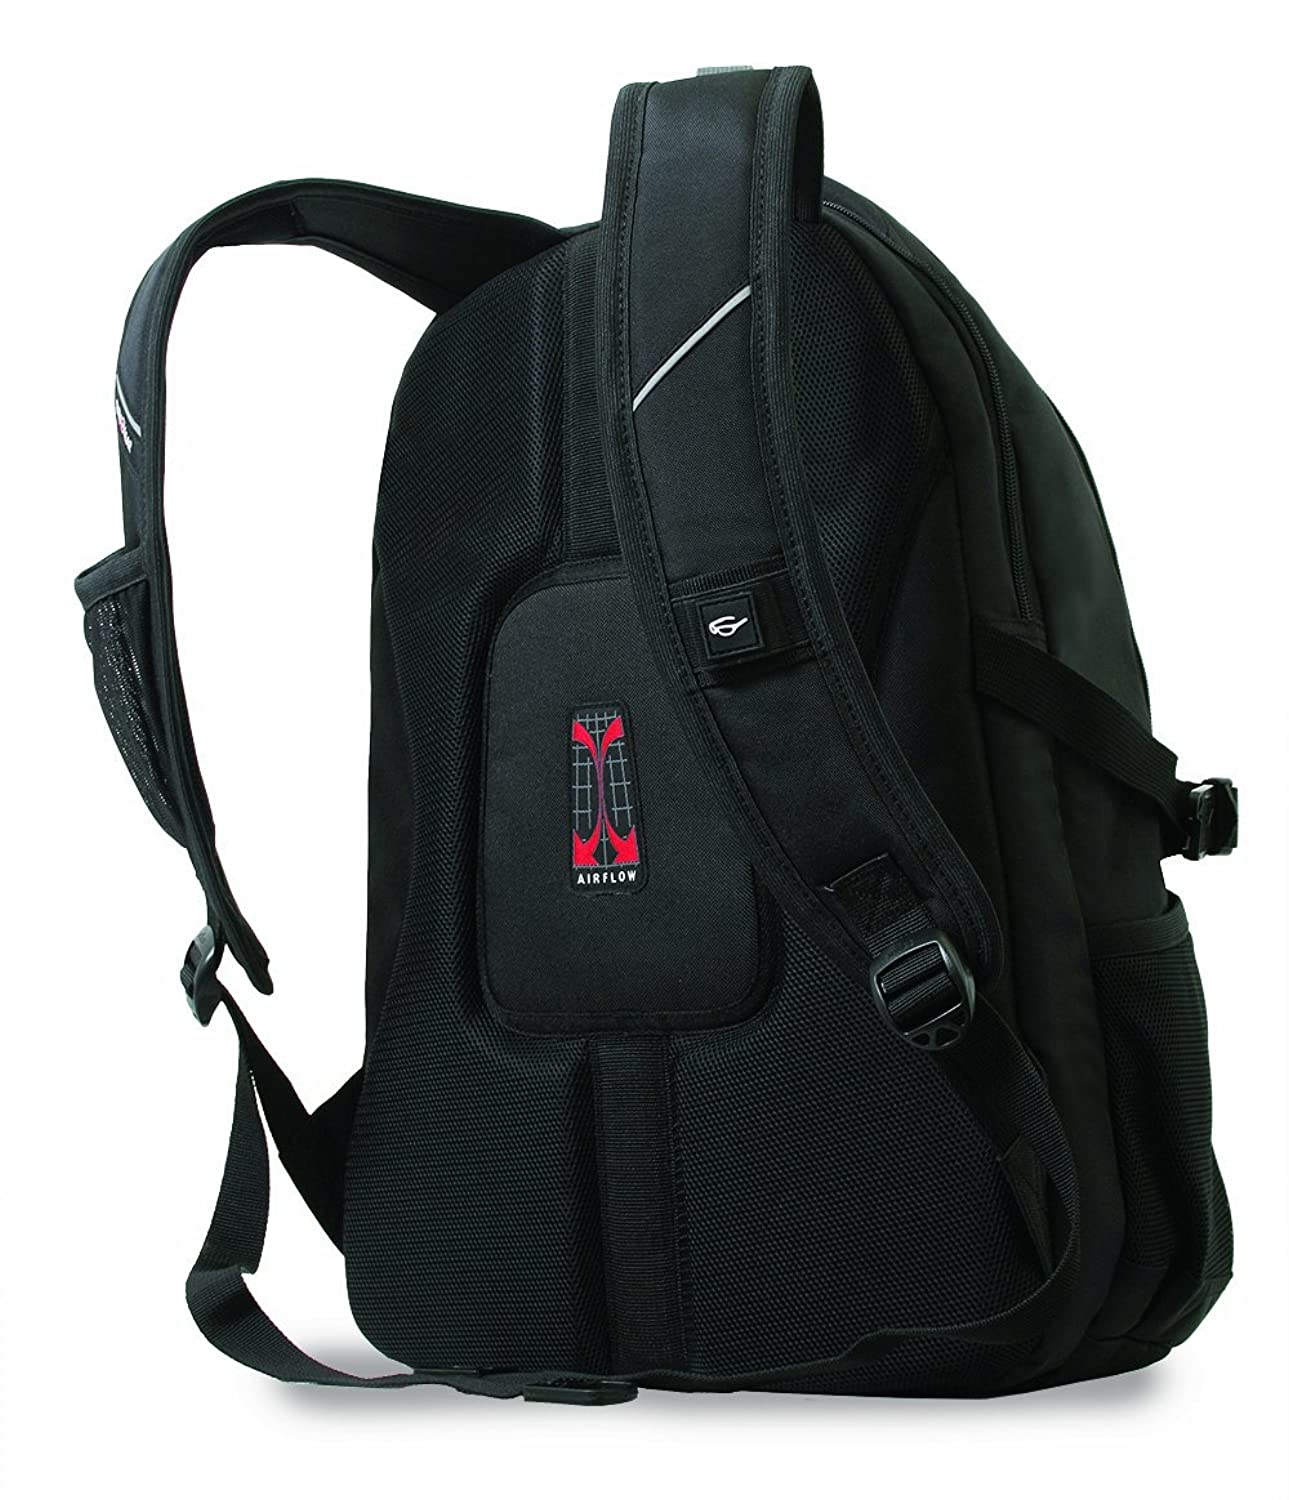 Amazon.com: SwissGear SA3181 Black Computer Backpack - Fits Most ...